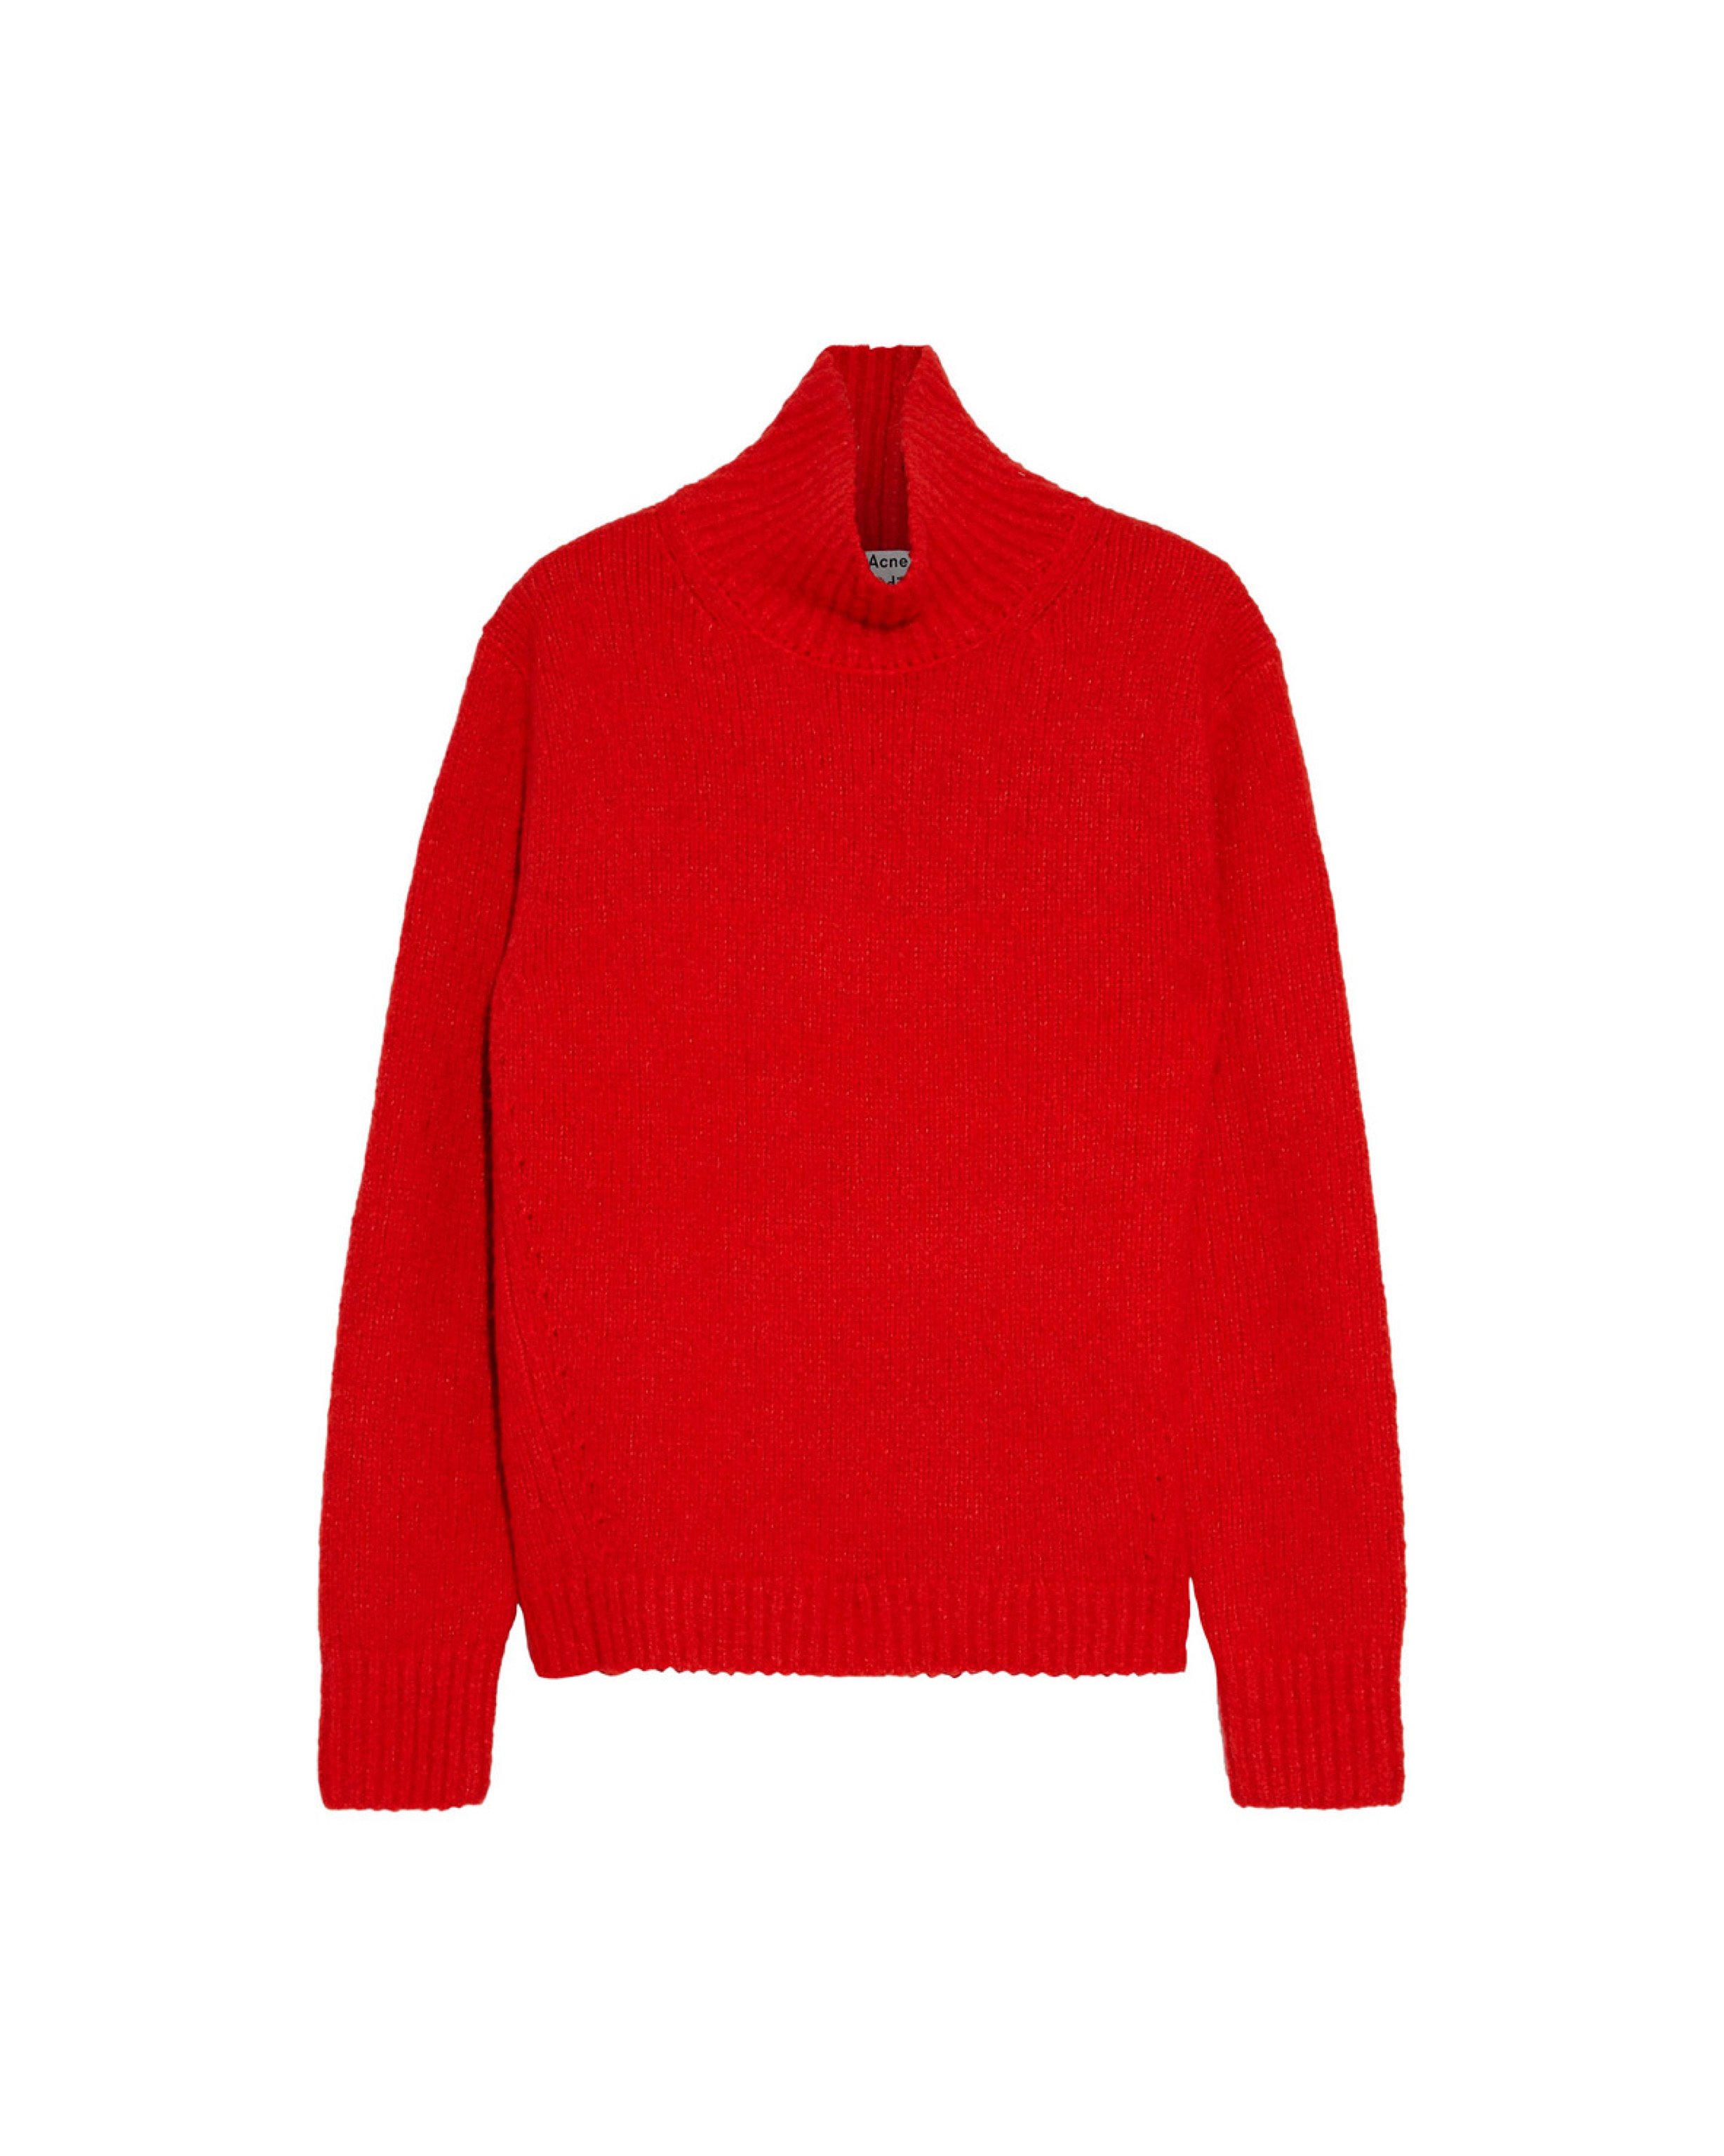 ACNE Studios Sweater $257.00